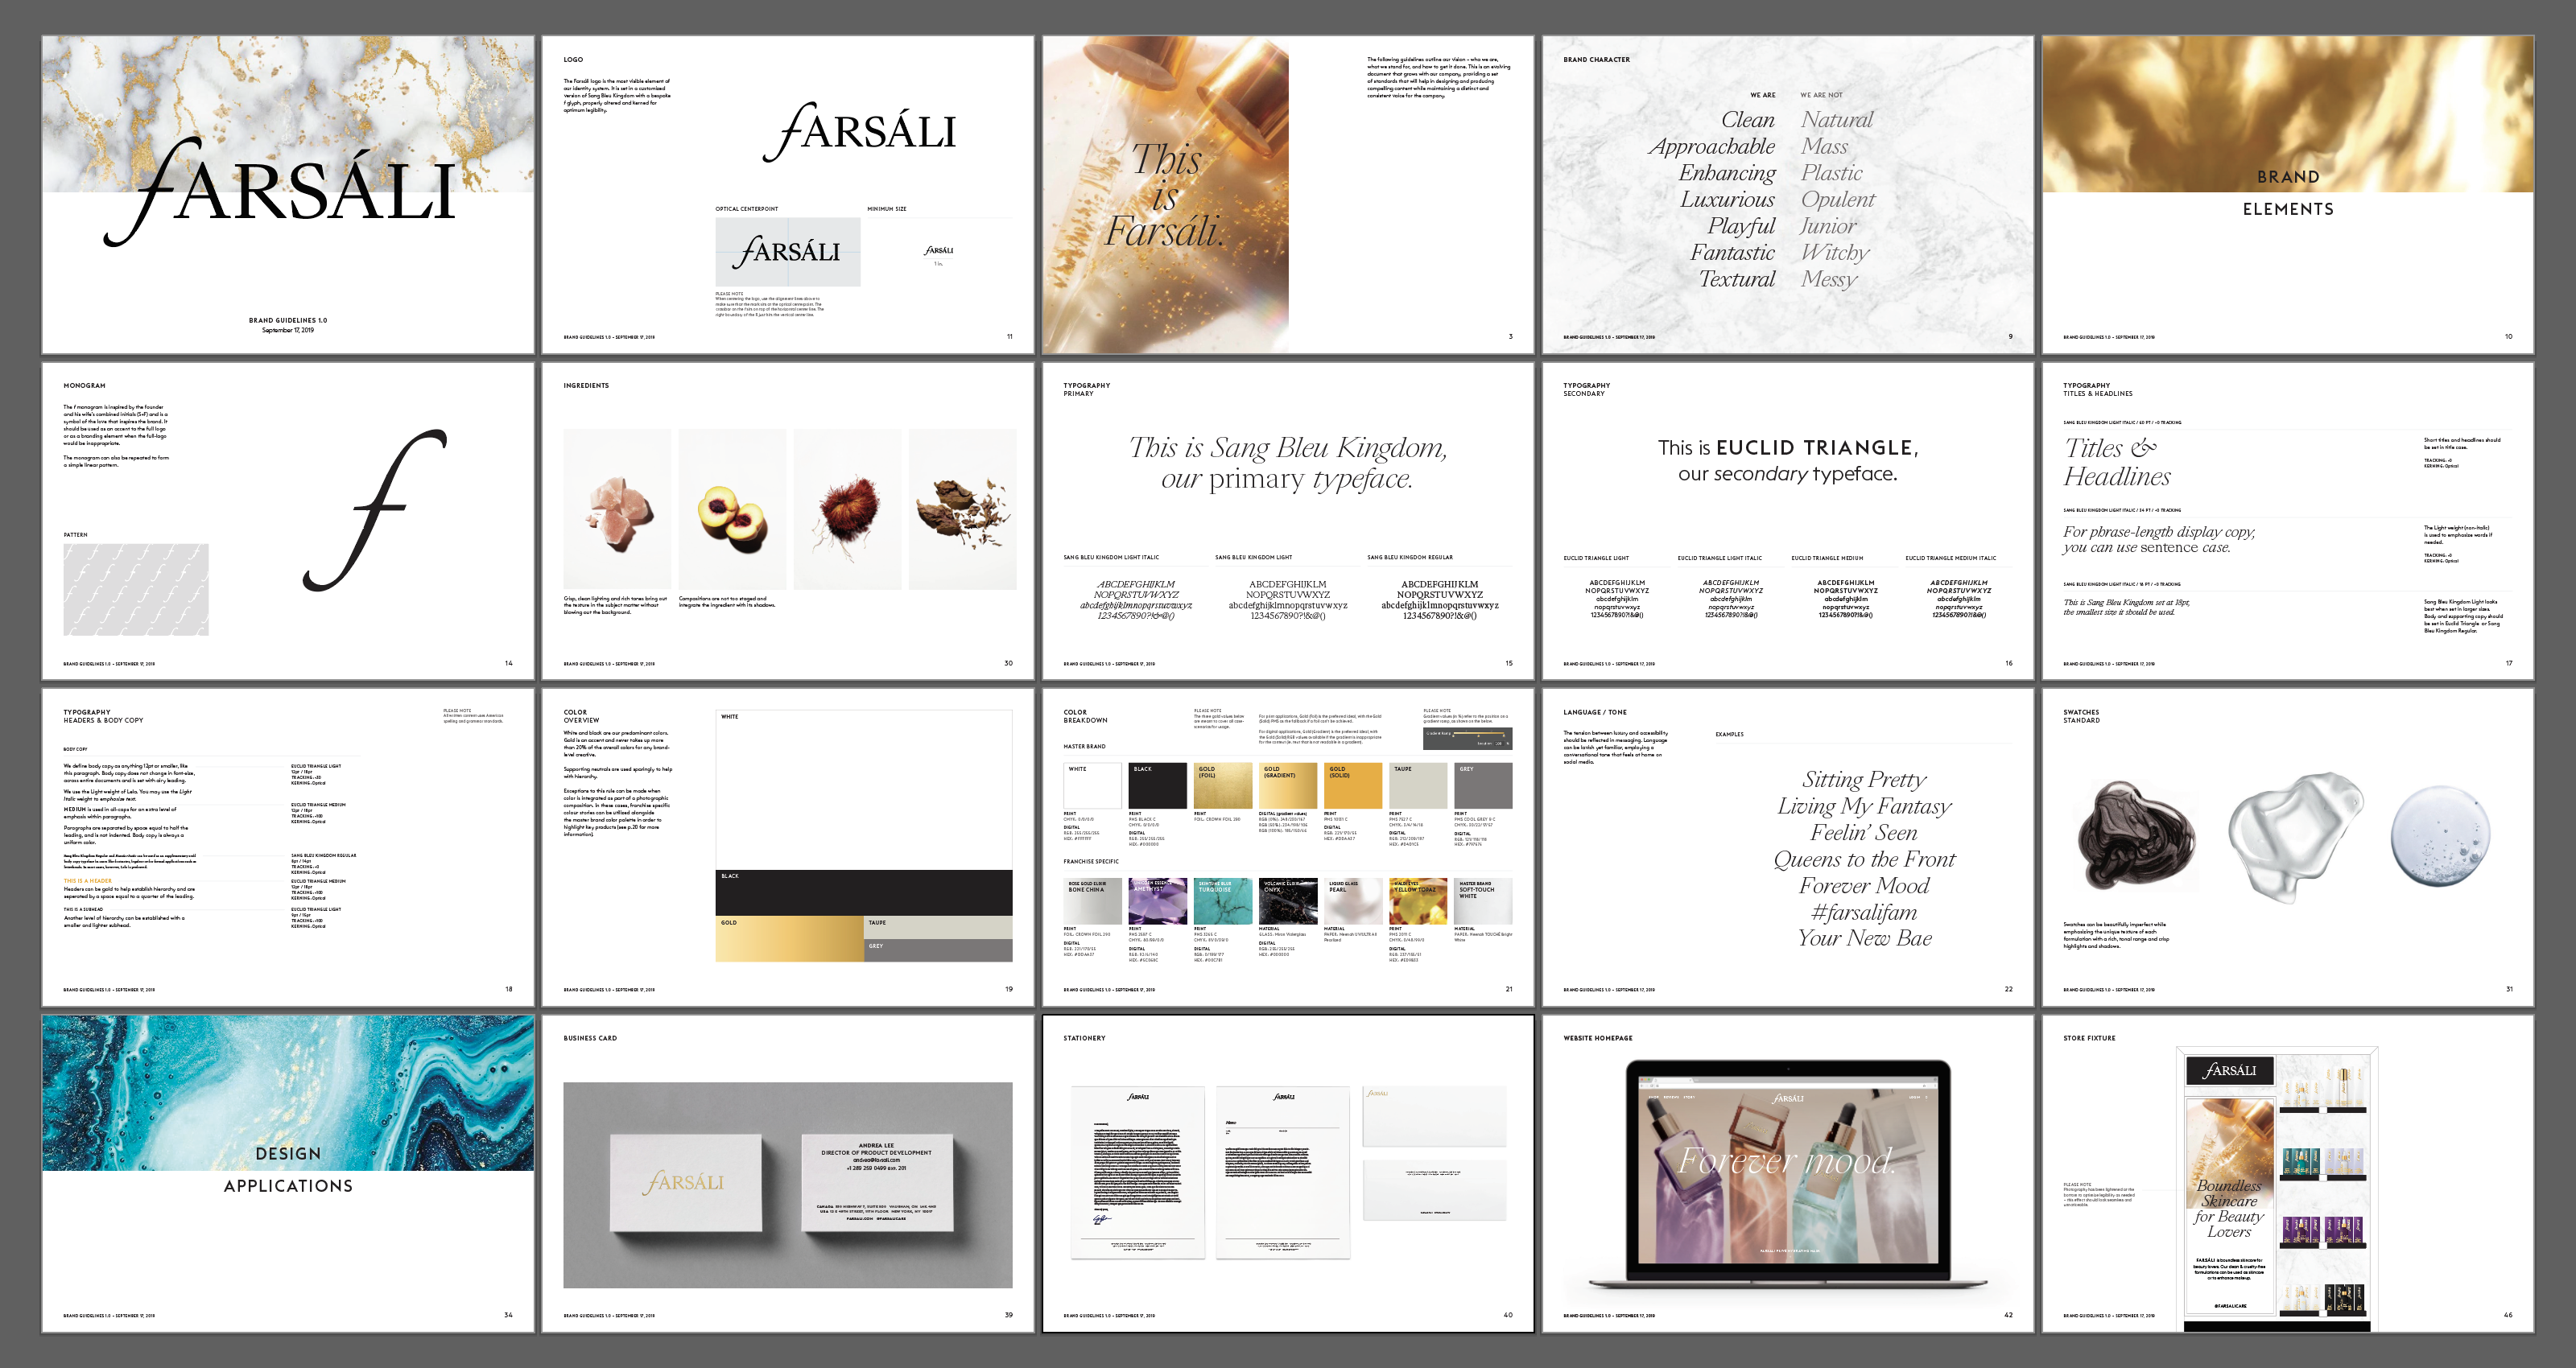 Farsali bill board mockup